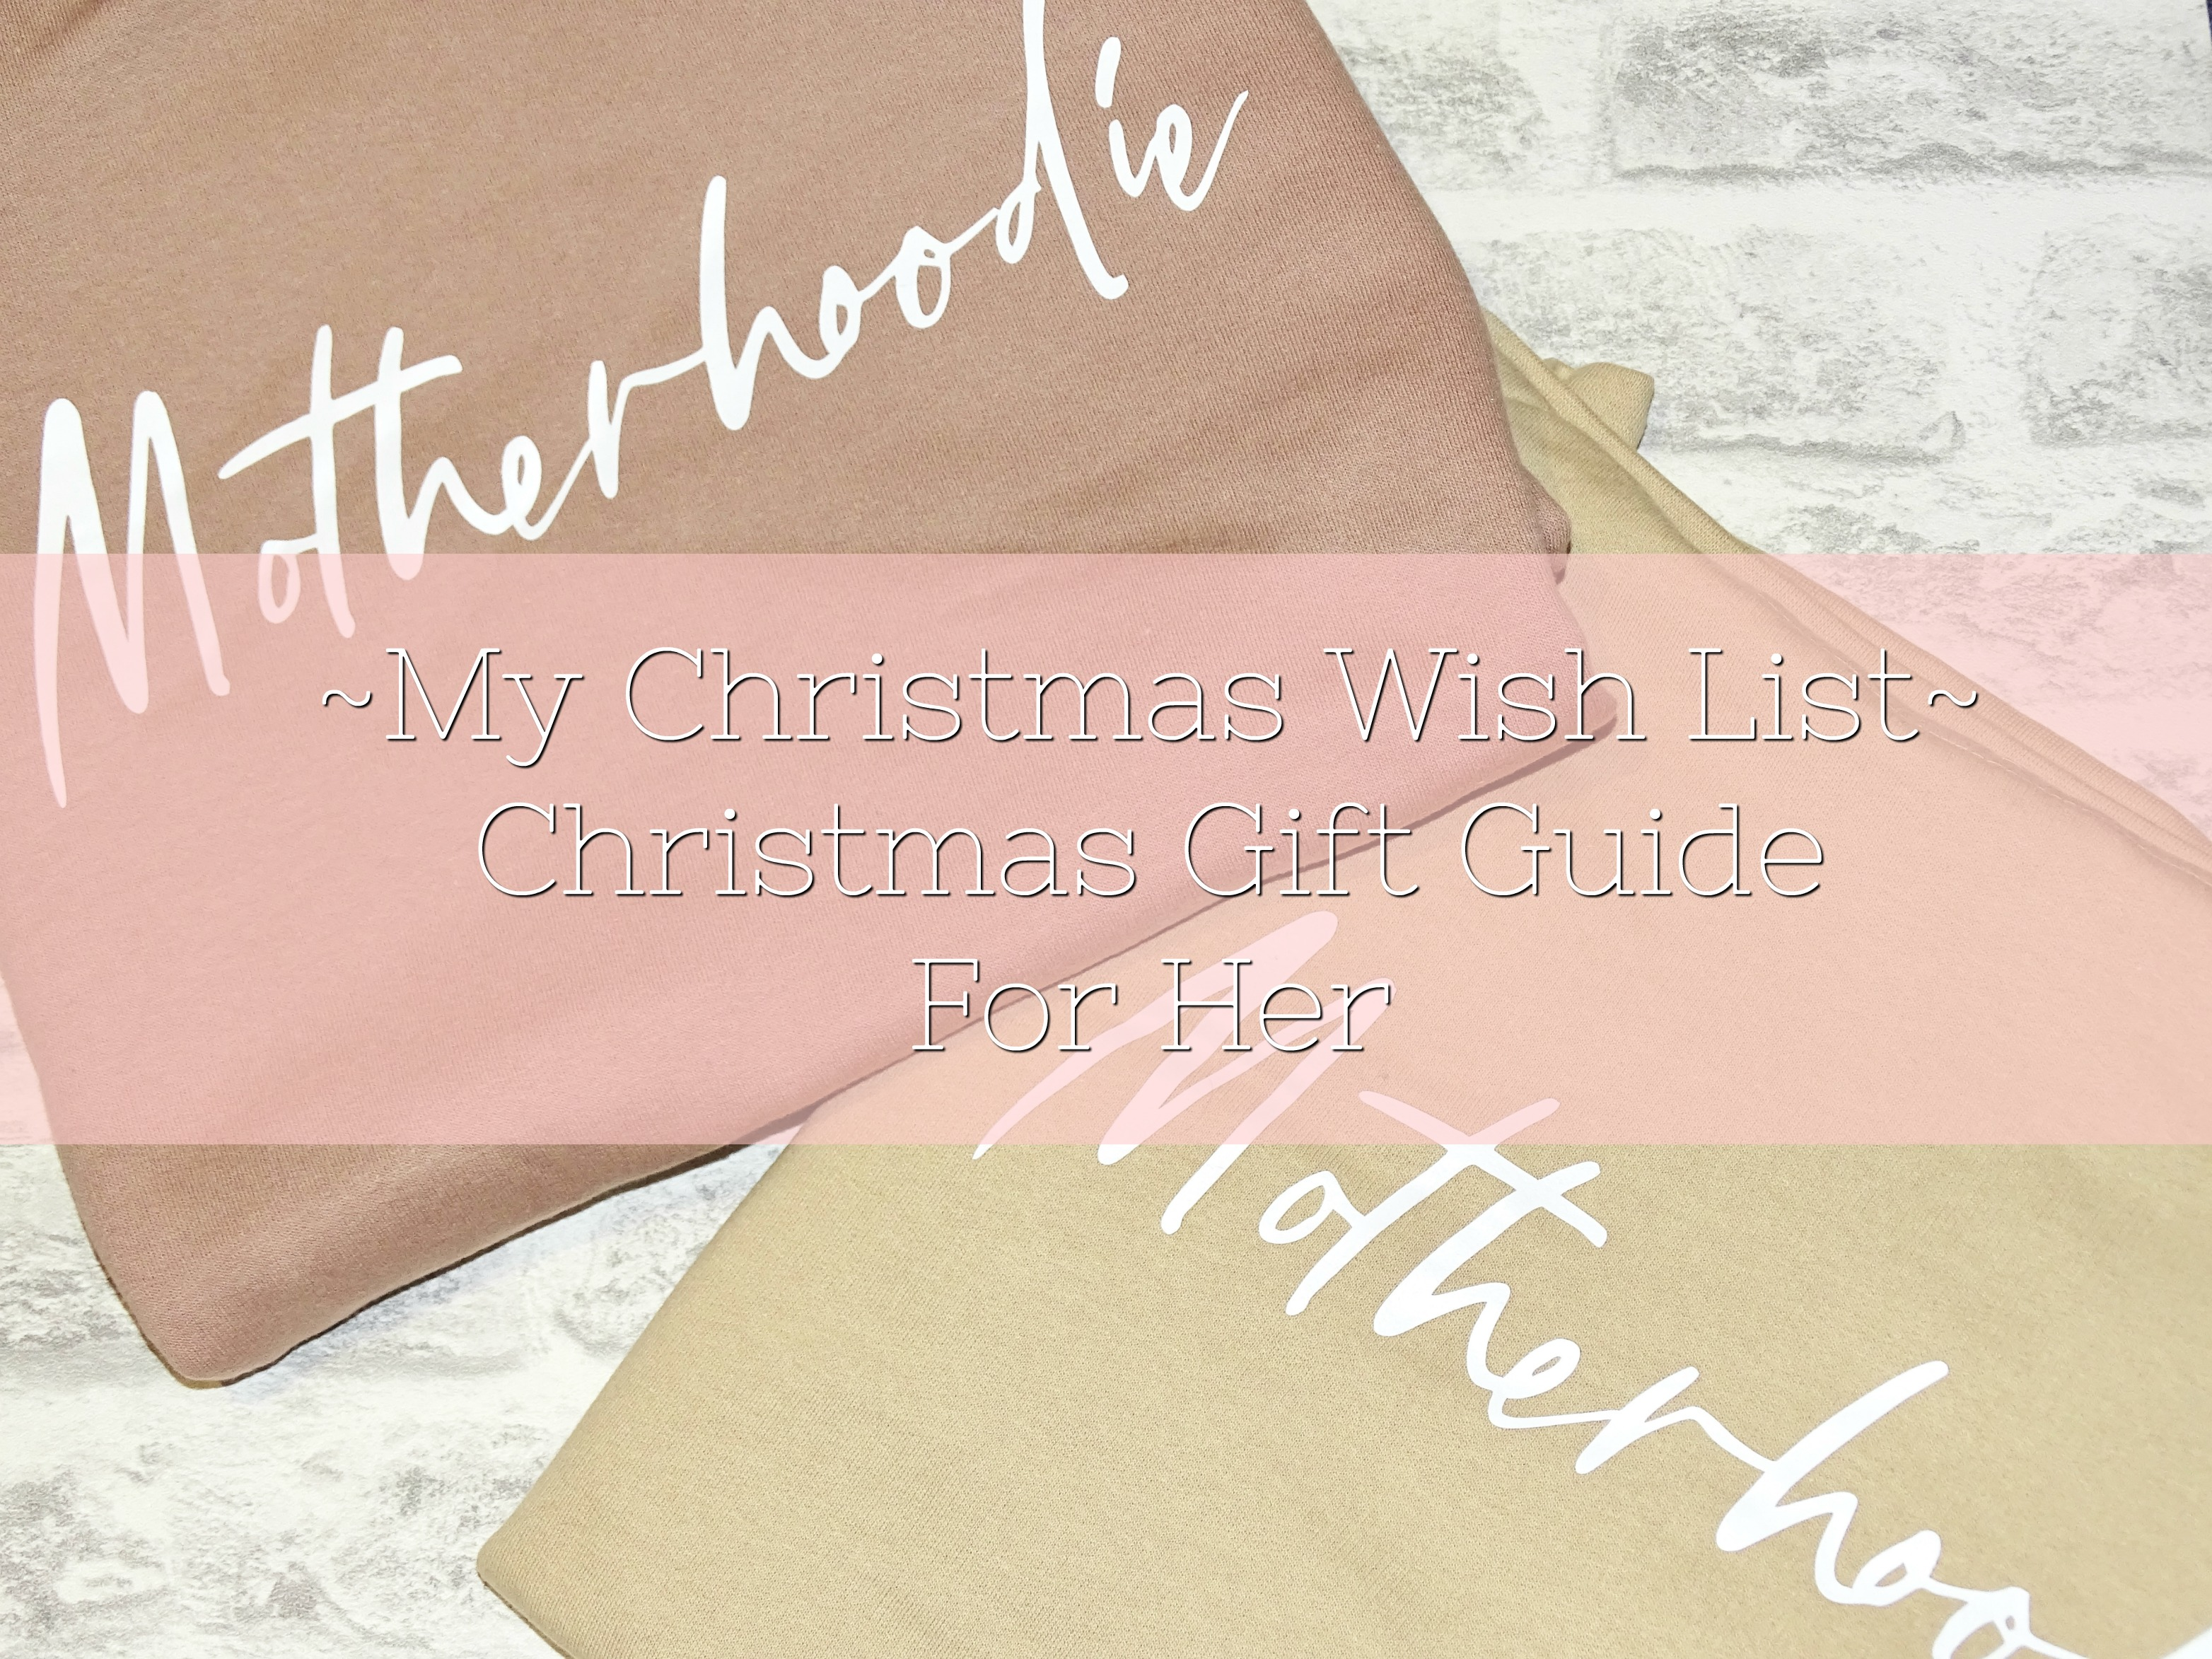 My Christmas Wish List // Christmas Gift Guide For Her